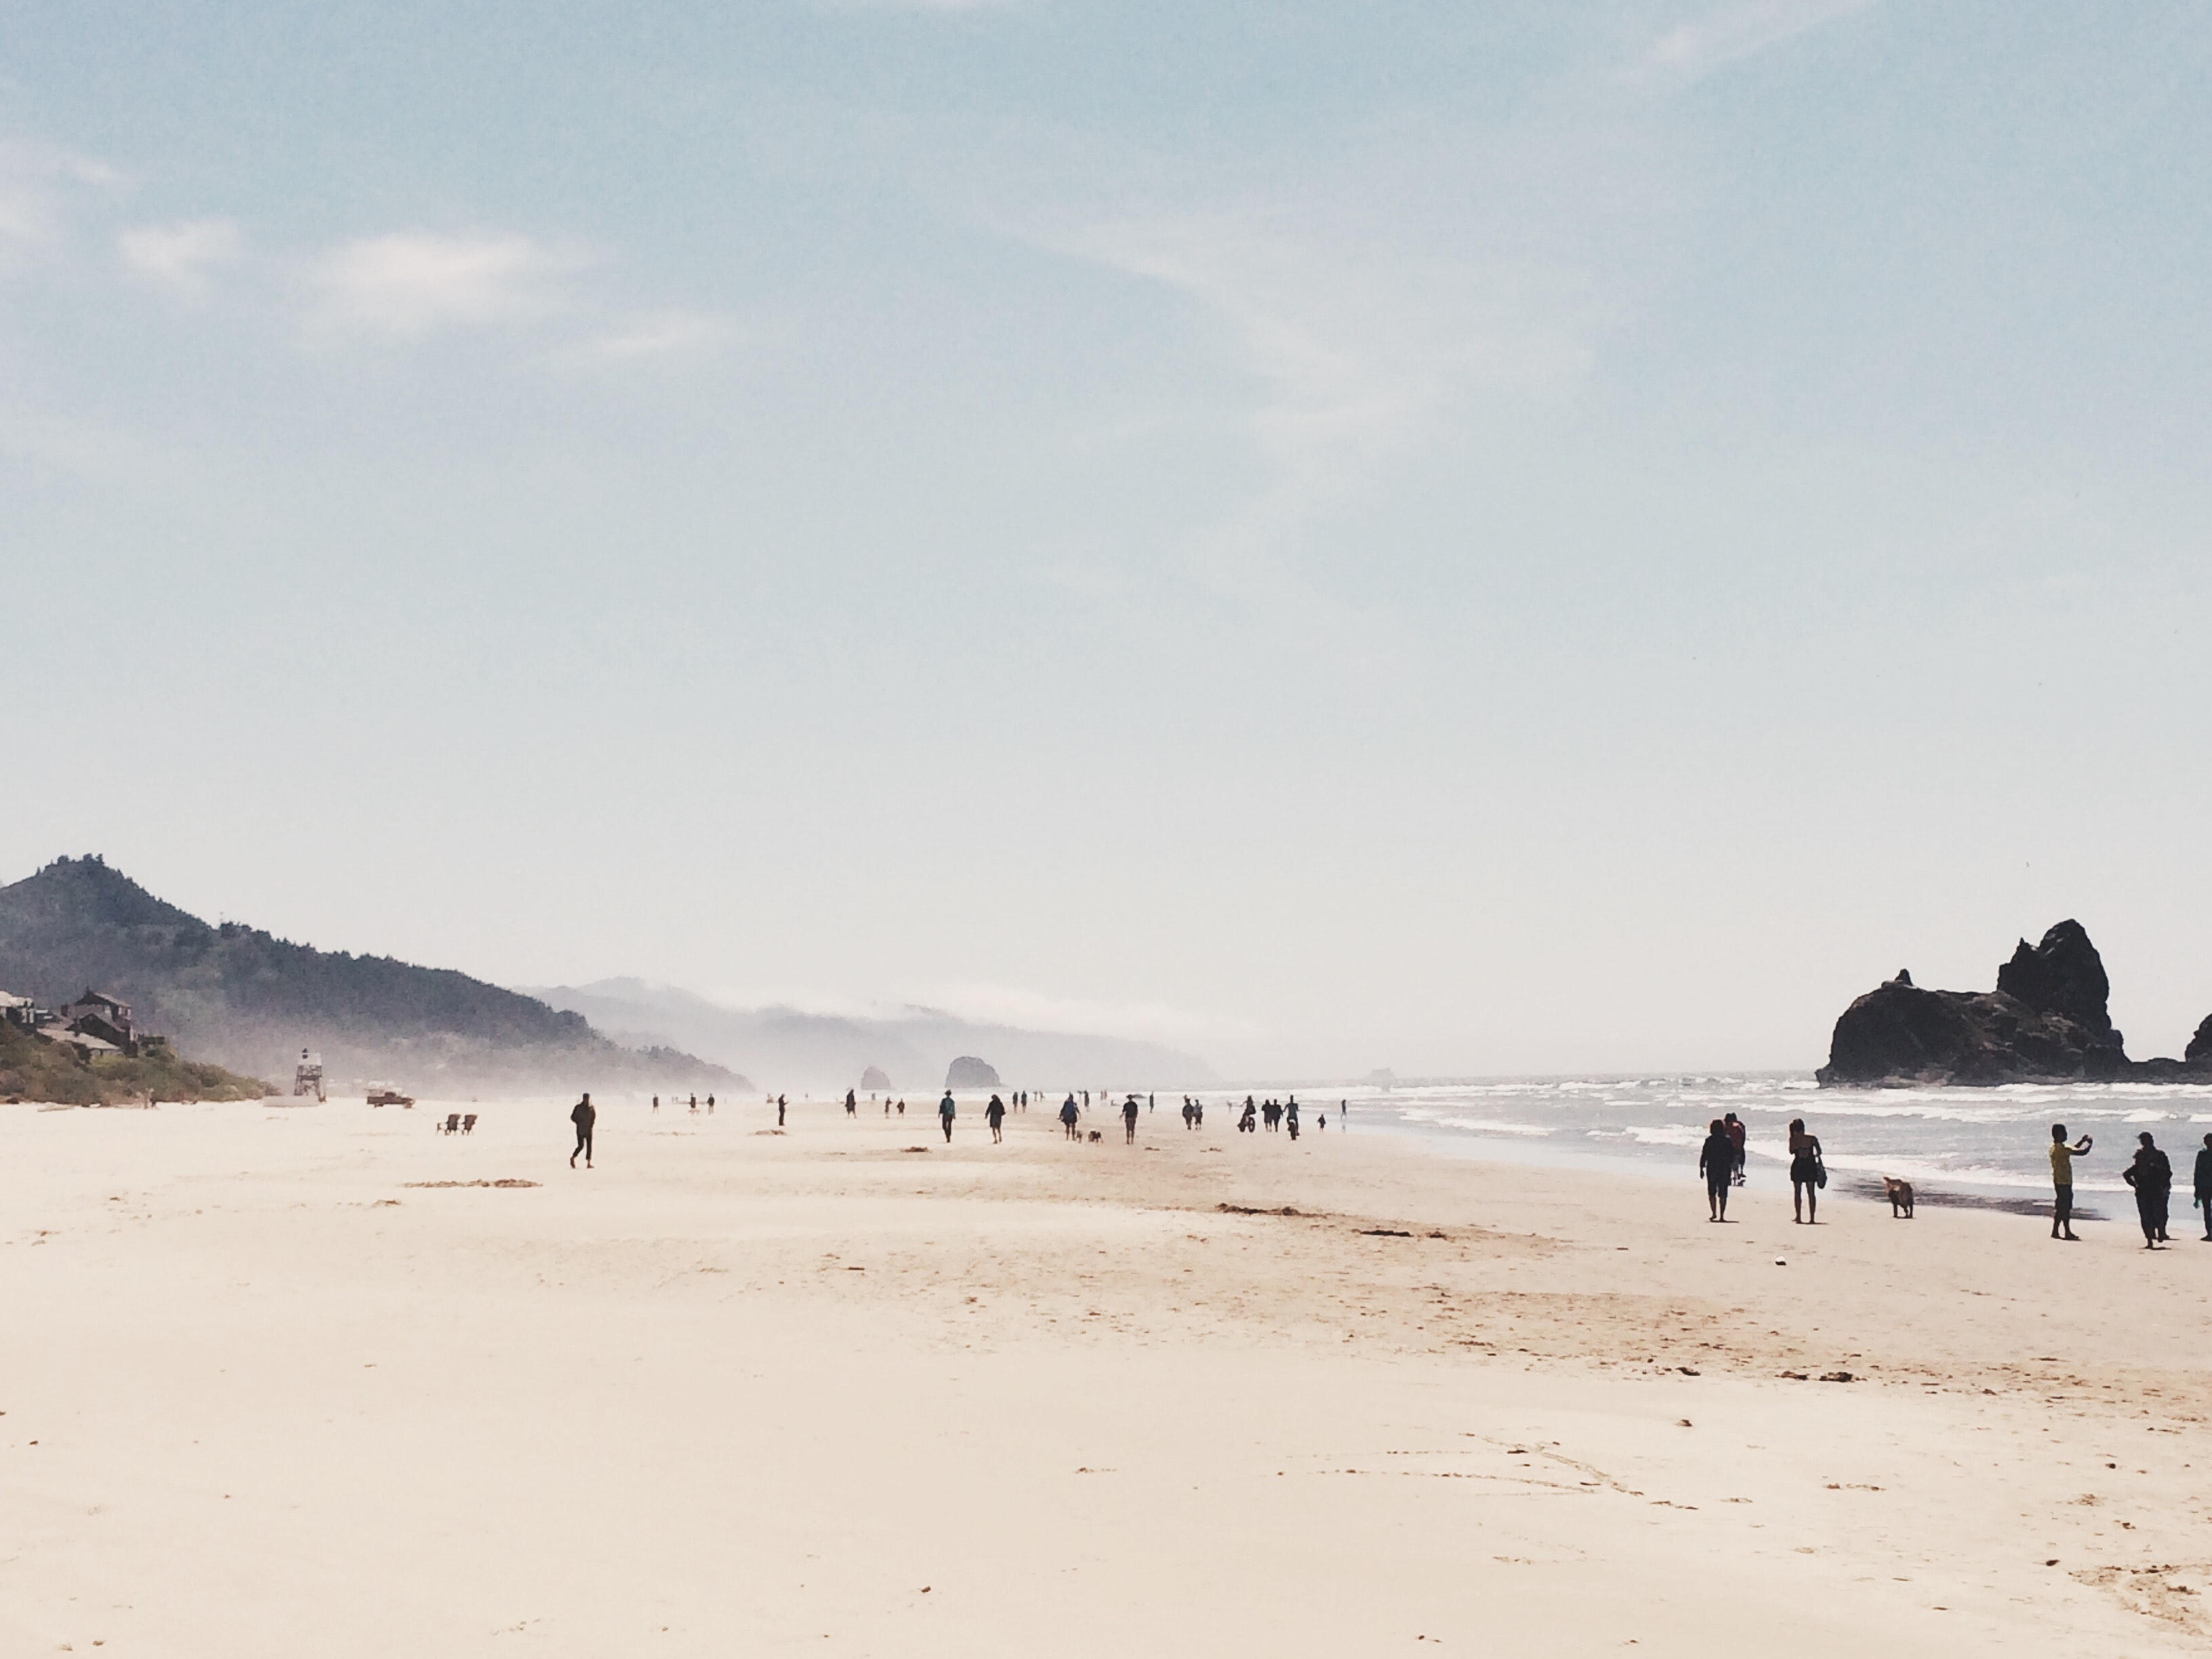 People enjoying a swell leisure time on large beach shore